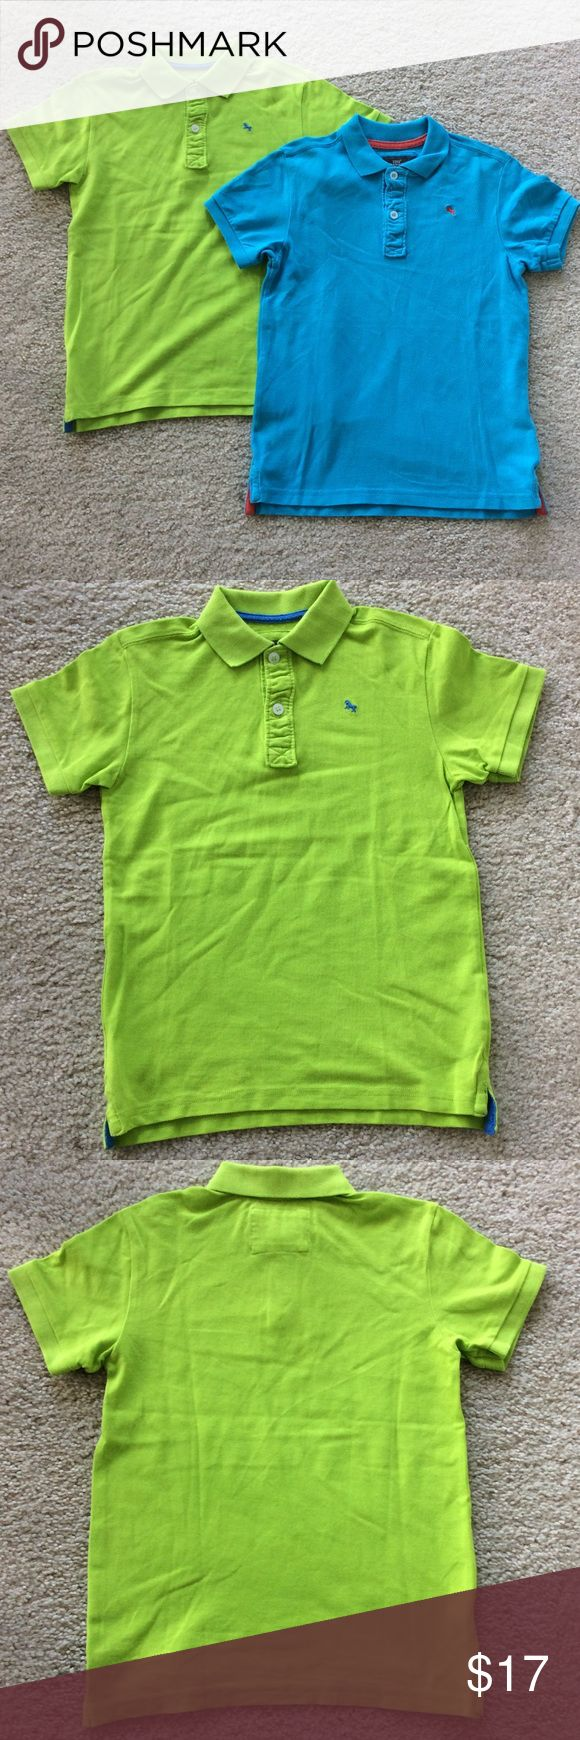 👫H&M Blue and Green Polo Shirts Set of 2 H&M Polo Shirts. Short sleeves. Size Boys 6-8 yrs. 100% cotton. Preloved with slight signs of wash and wear. H&M Shirts & Tops Polos